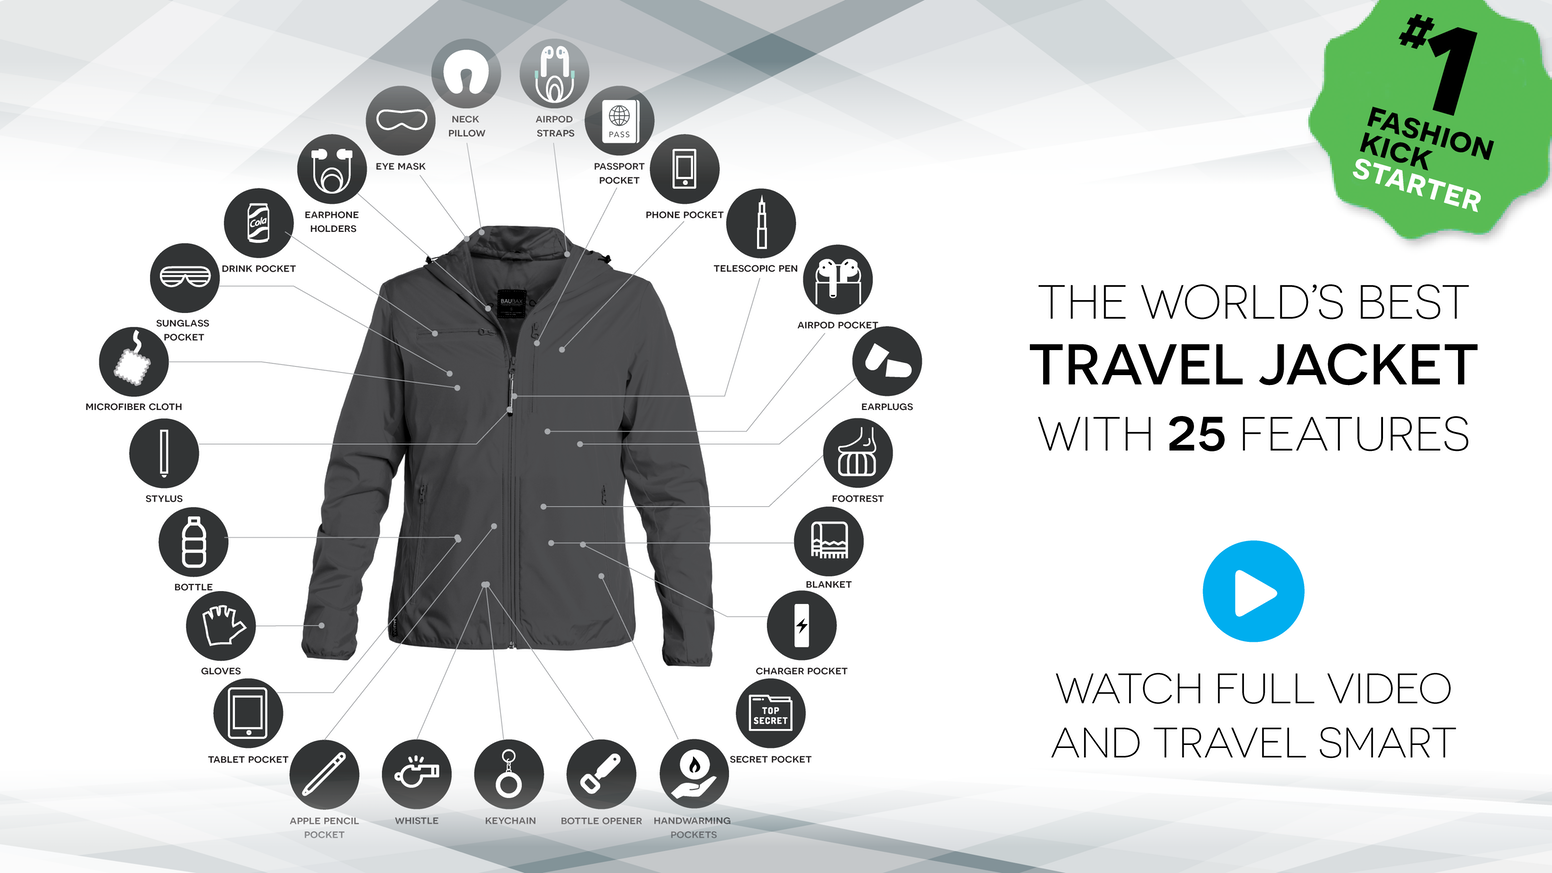 The worlds best travel jacket with 25 features baubax 20 by travel jackets with built in neck pillow eye mask gloves blanket gumiabroncs Images